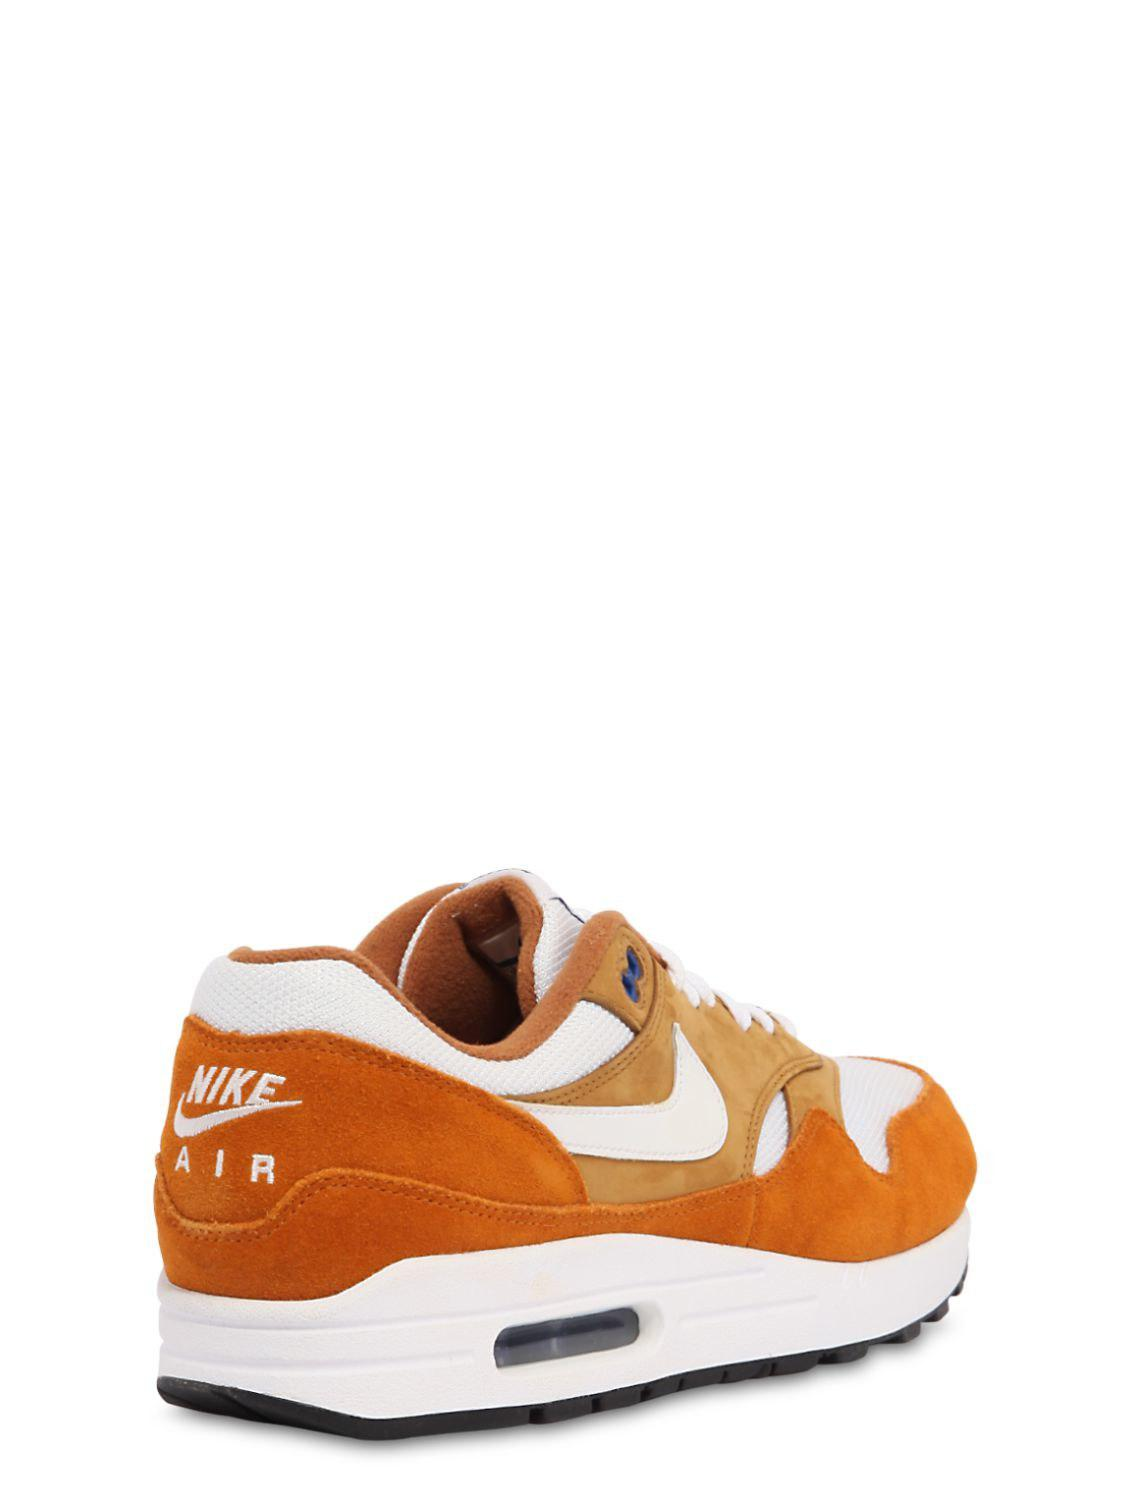 d0b0353c81 Lyst - Nike Air Max 1 Og Curry Sneakers in Natural for Men